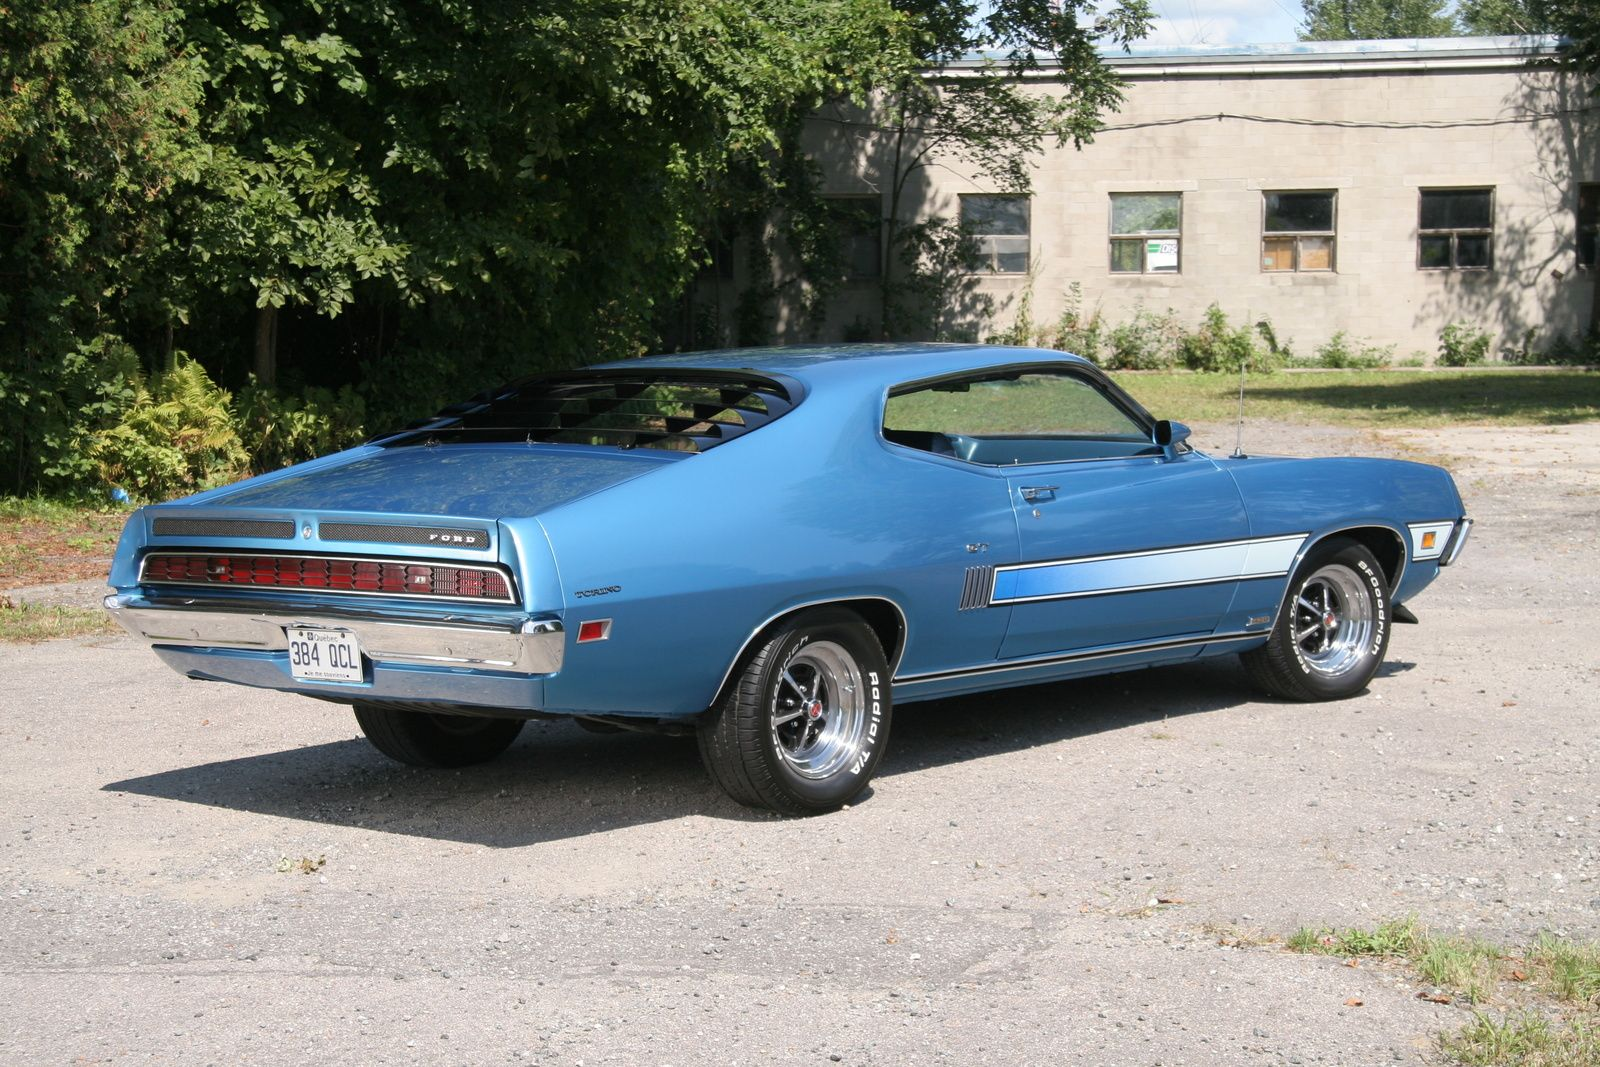 429cu 650hp v8 powered 70 ford torino cobra classic beautys pinterest ford torino ford and cars